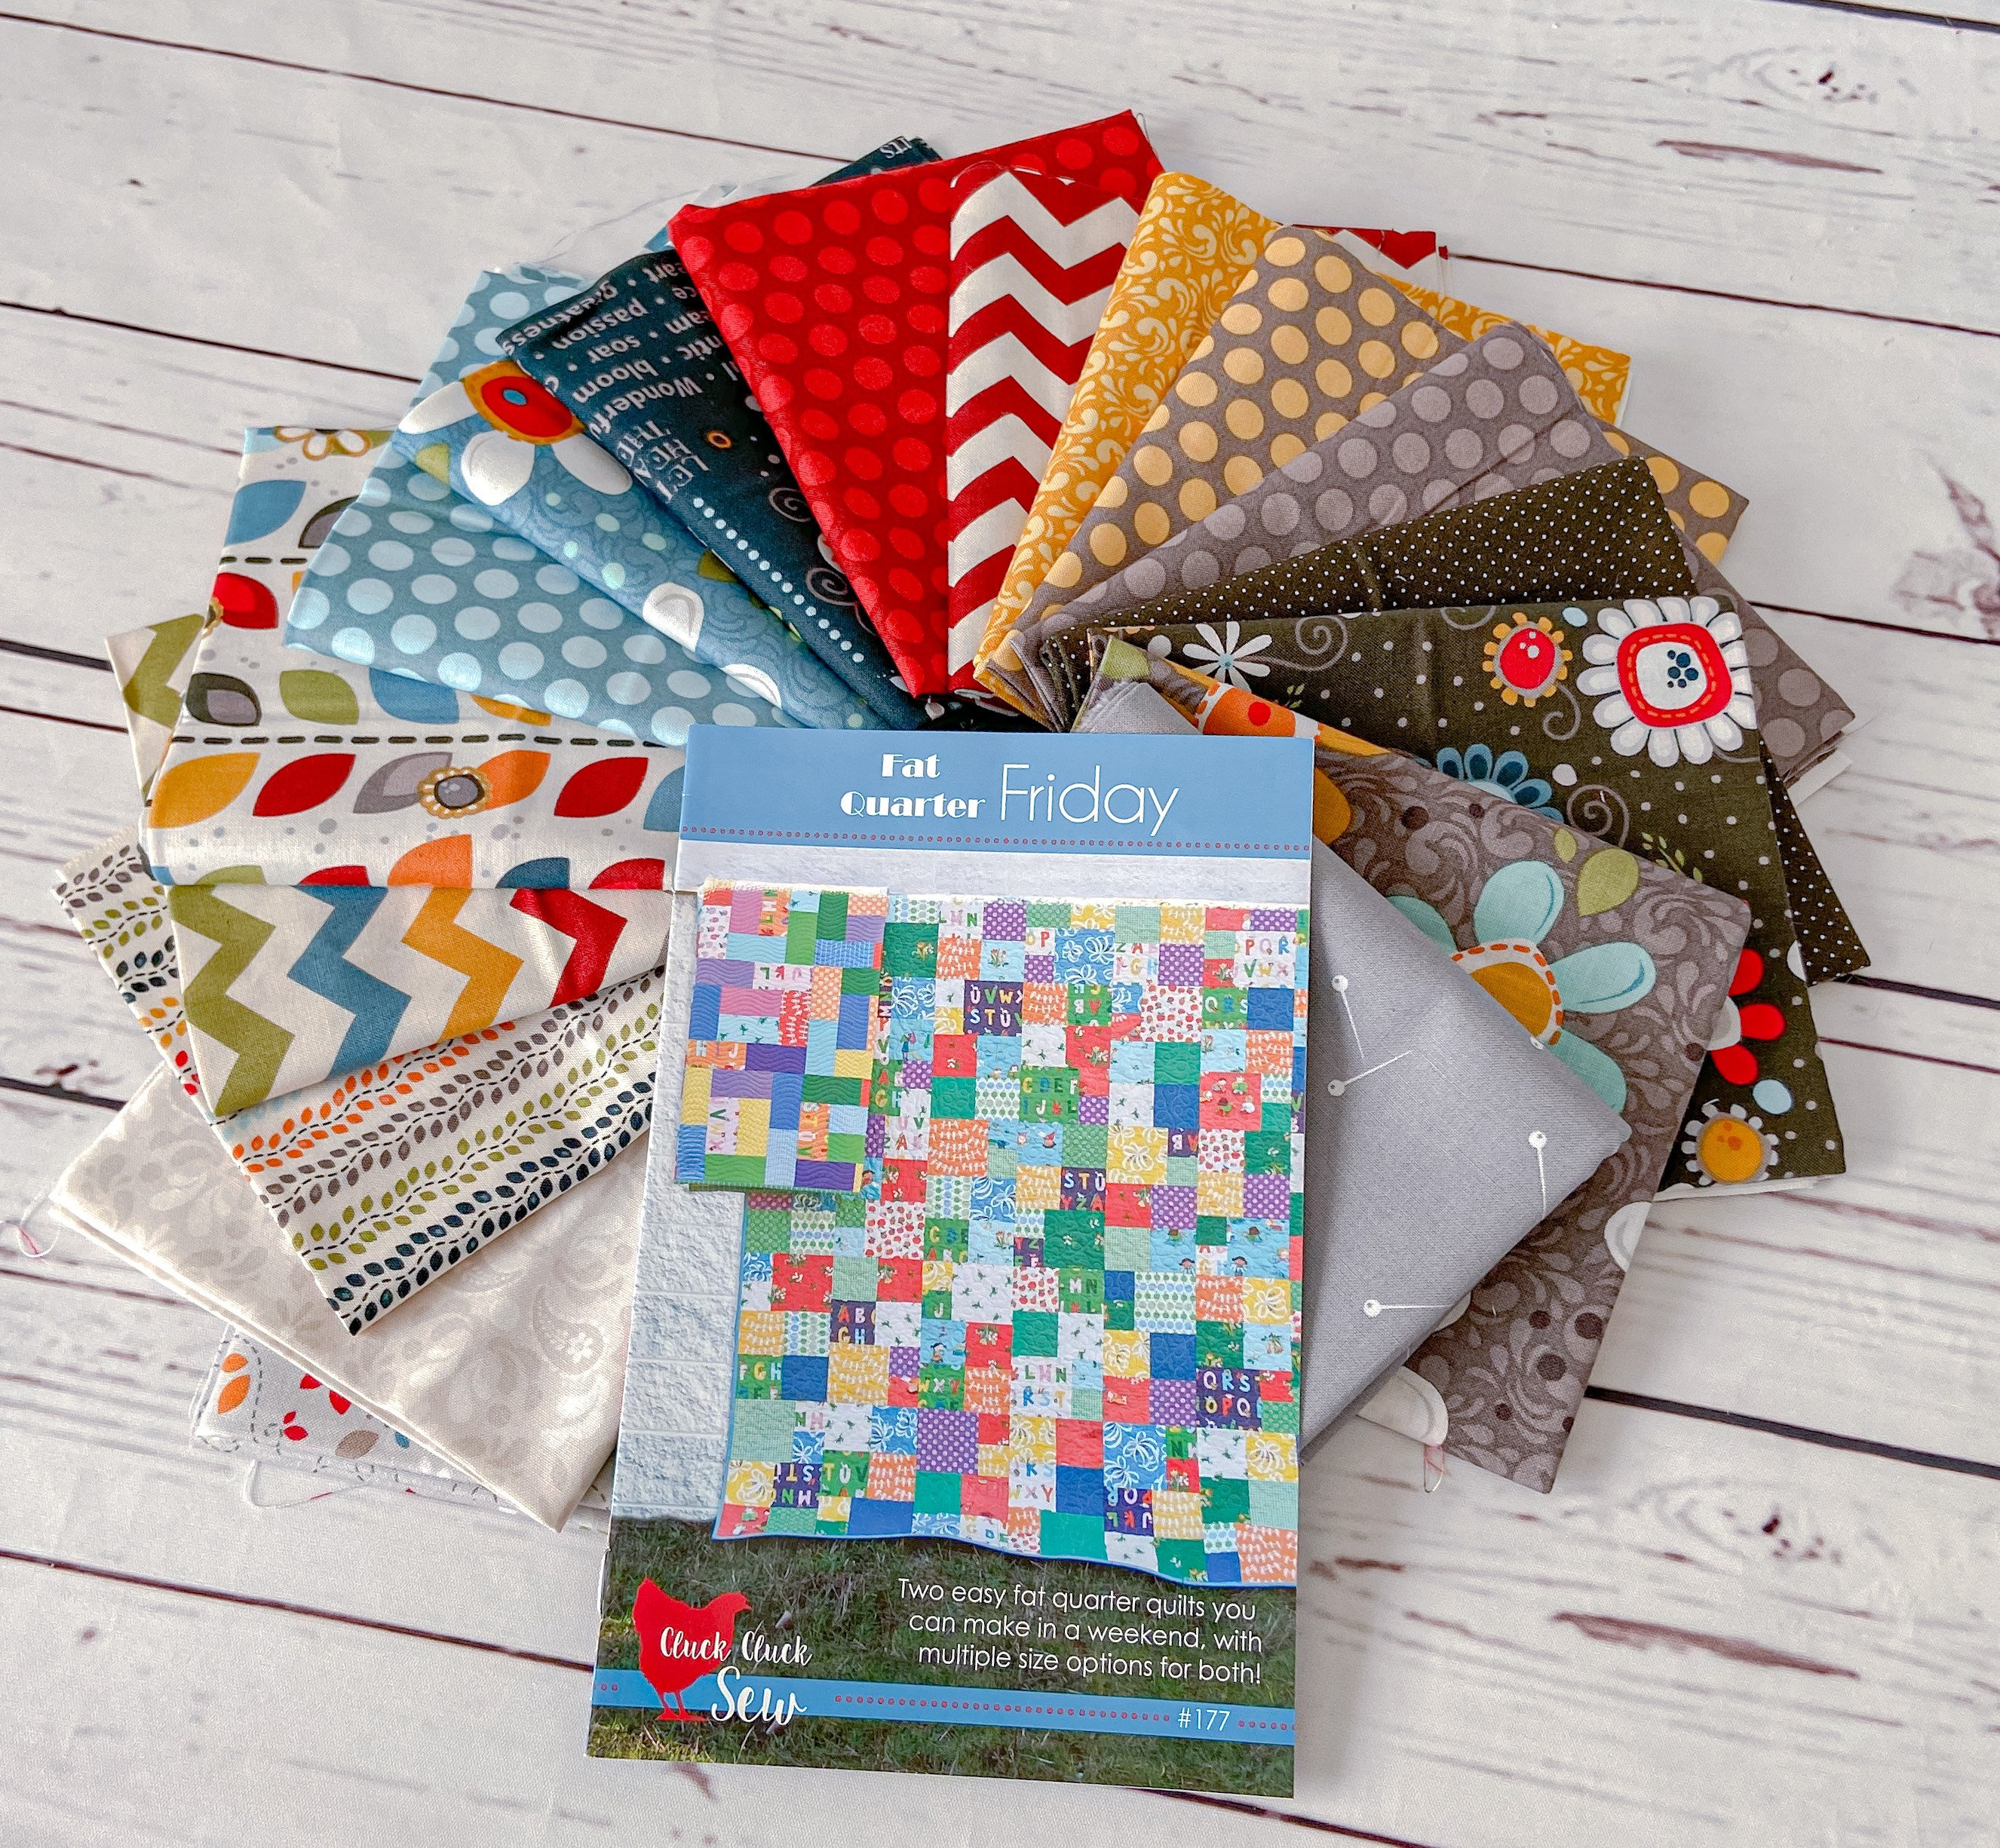 Nested Owl Quilt Kit using Fat Quarter Friday Quilt Pattern by Cluck Cluck Sew